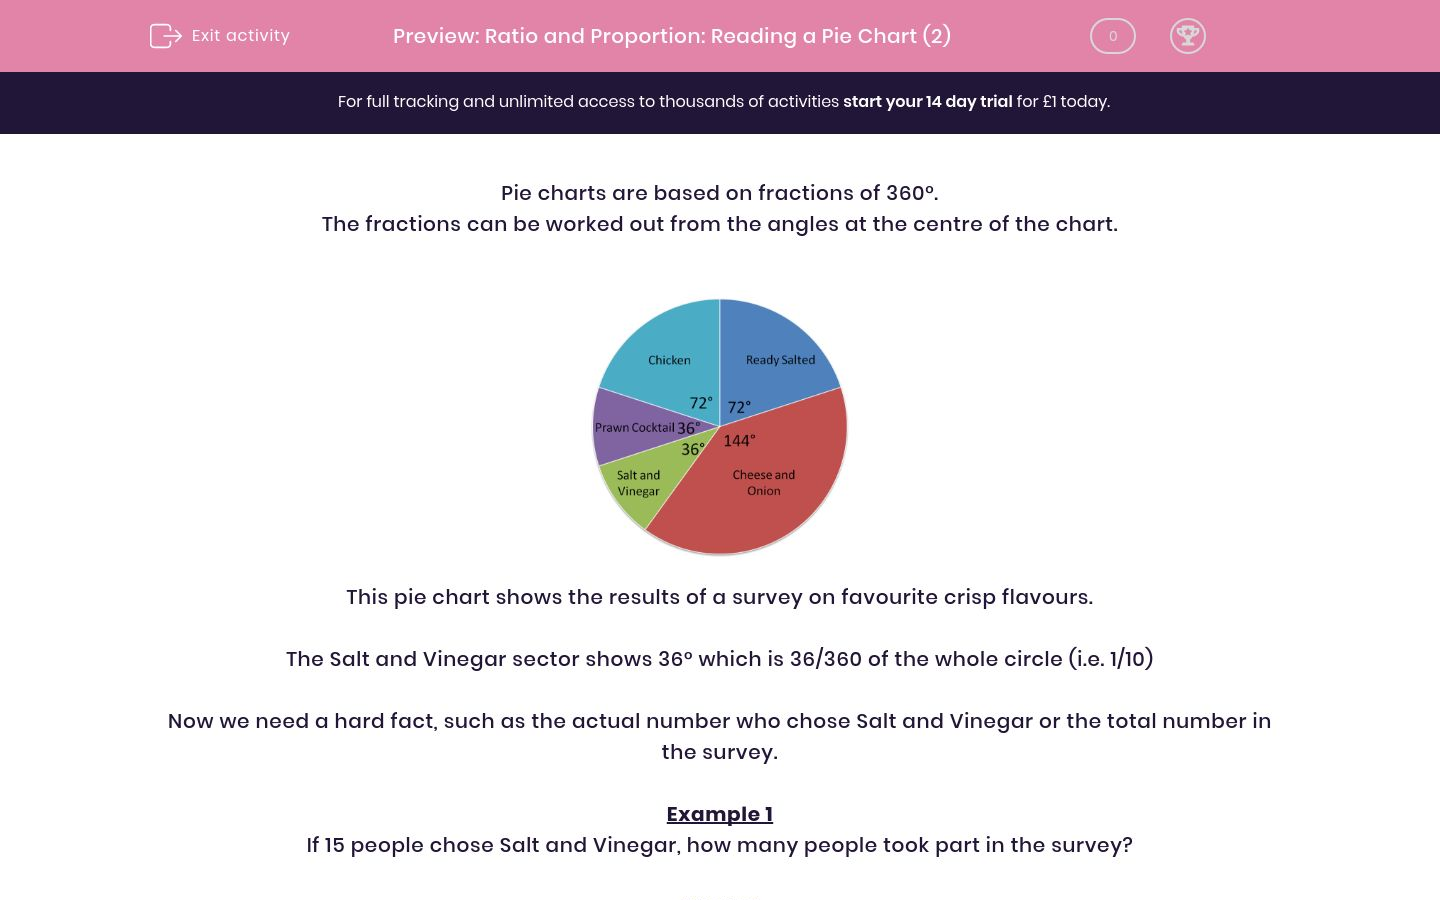 'Ratio and Proportion: Reading a Pie Chart (2)' worksheet